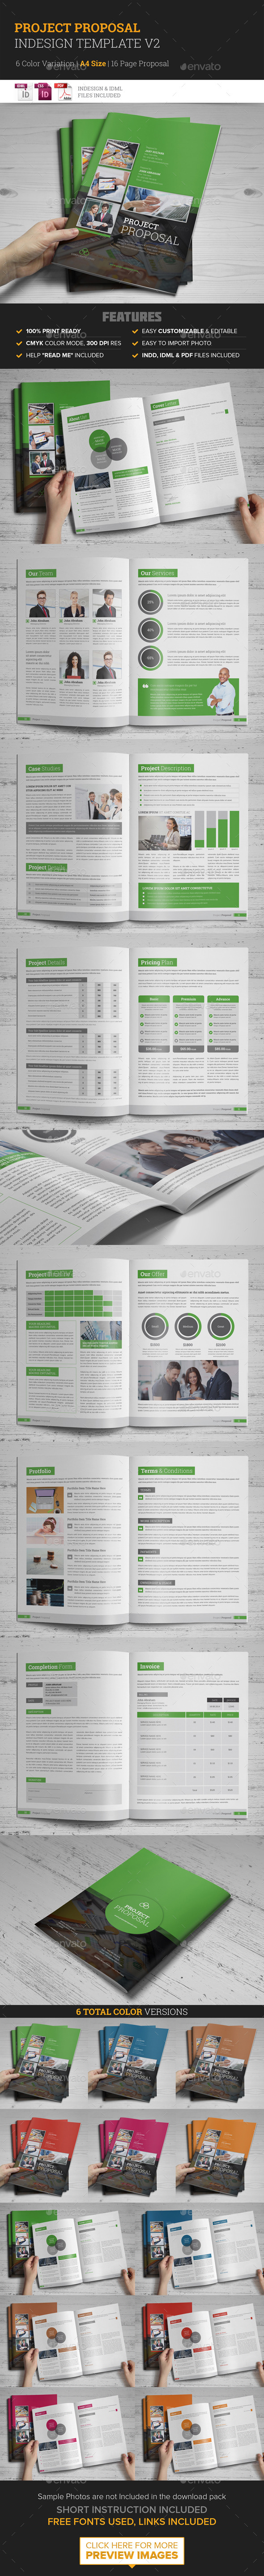 Project Proposal InDesign Template v2 - Proposals & Invoices Stationery